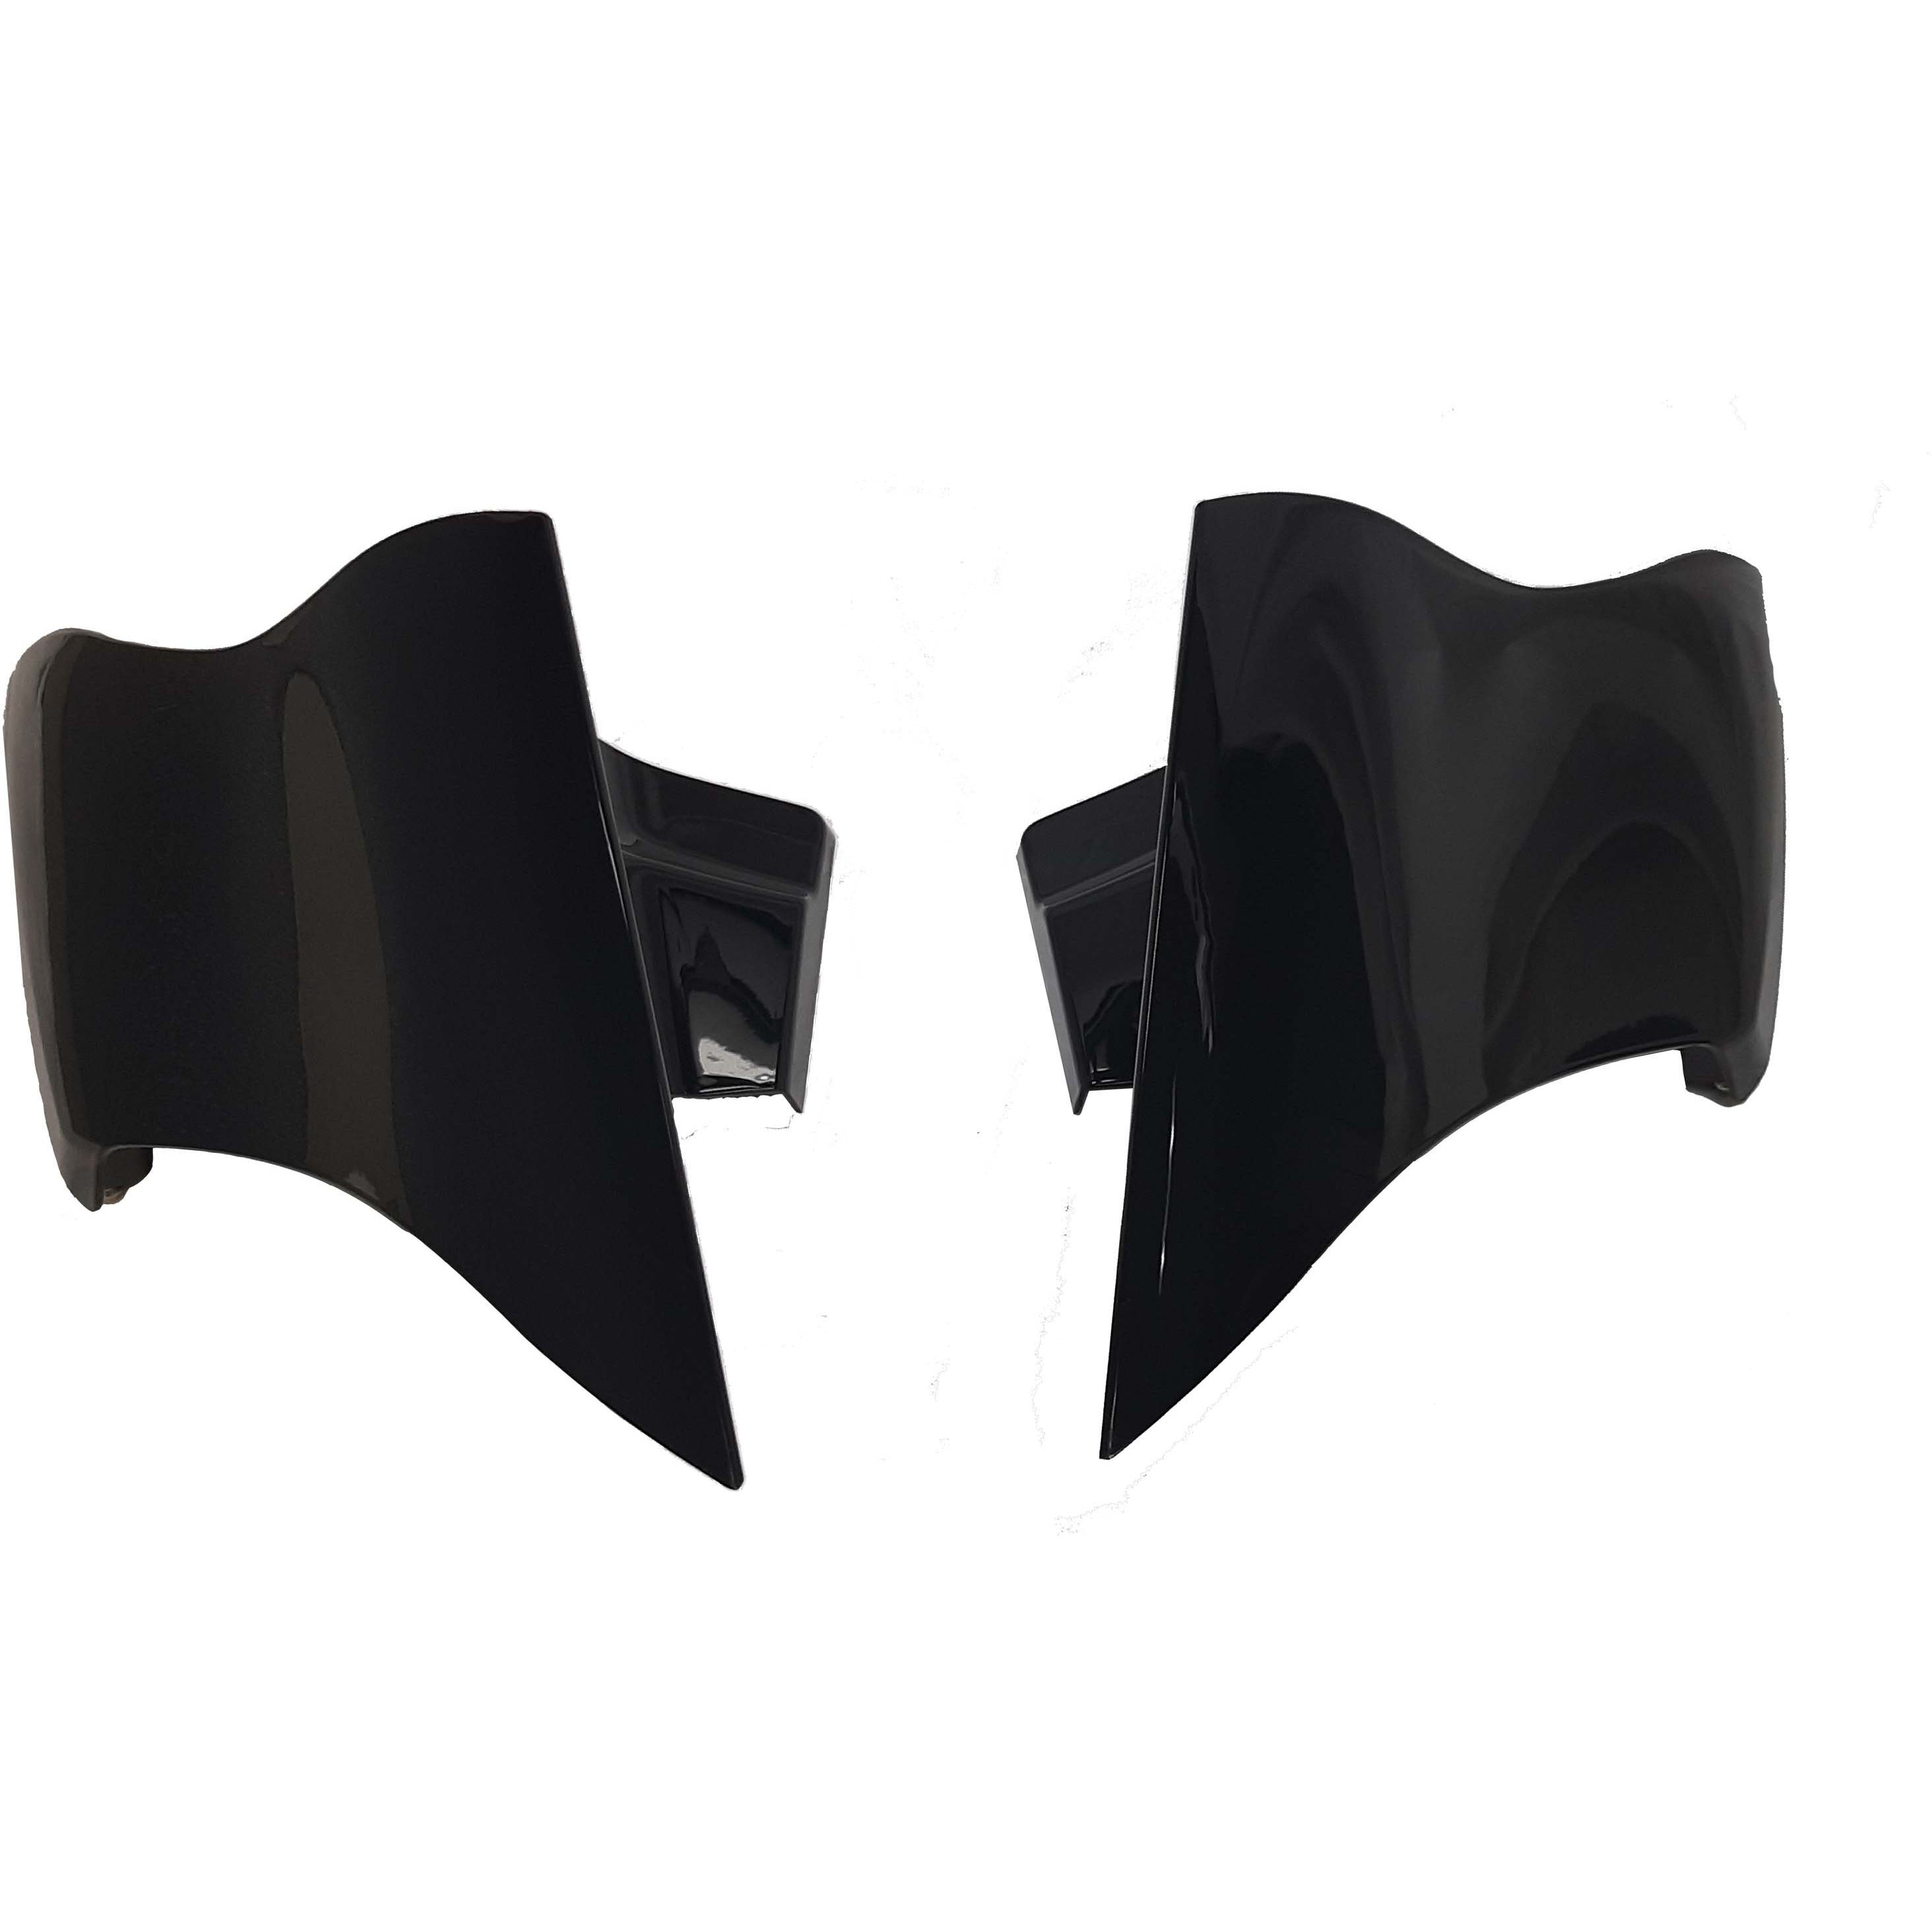 Davidson FLH Touring Models Bagger Brothers BB-HD1584-059B Vivid Black Inner Fairing with Switch Cap Kit for 1996-2013 Harley